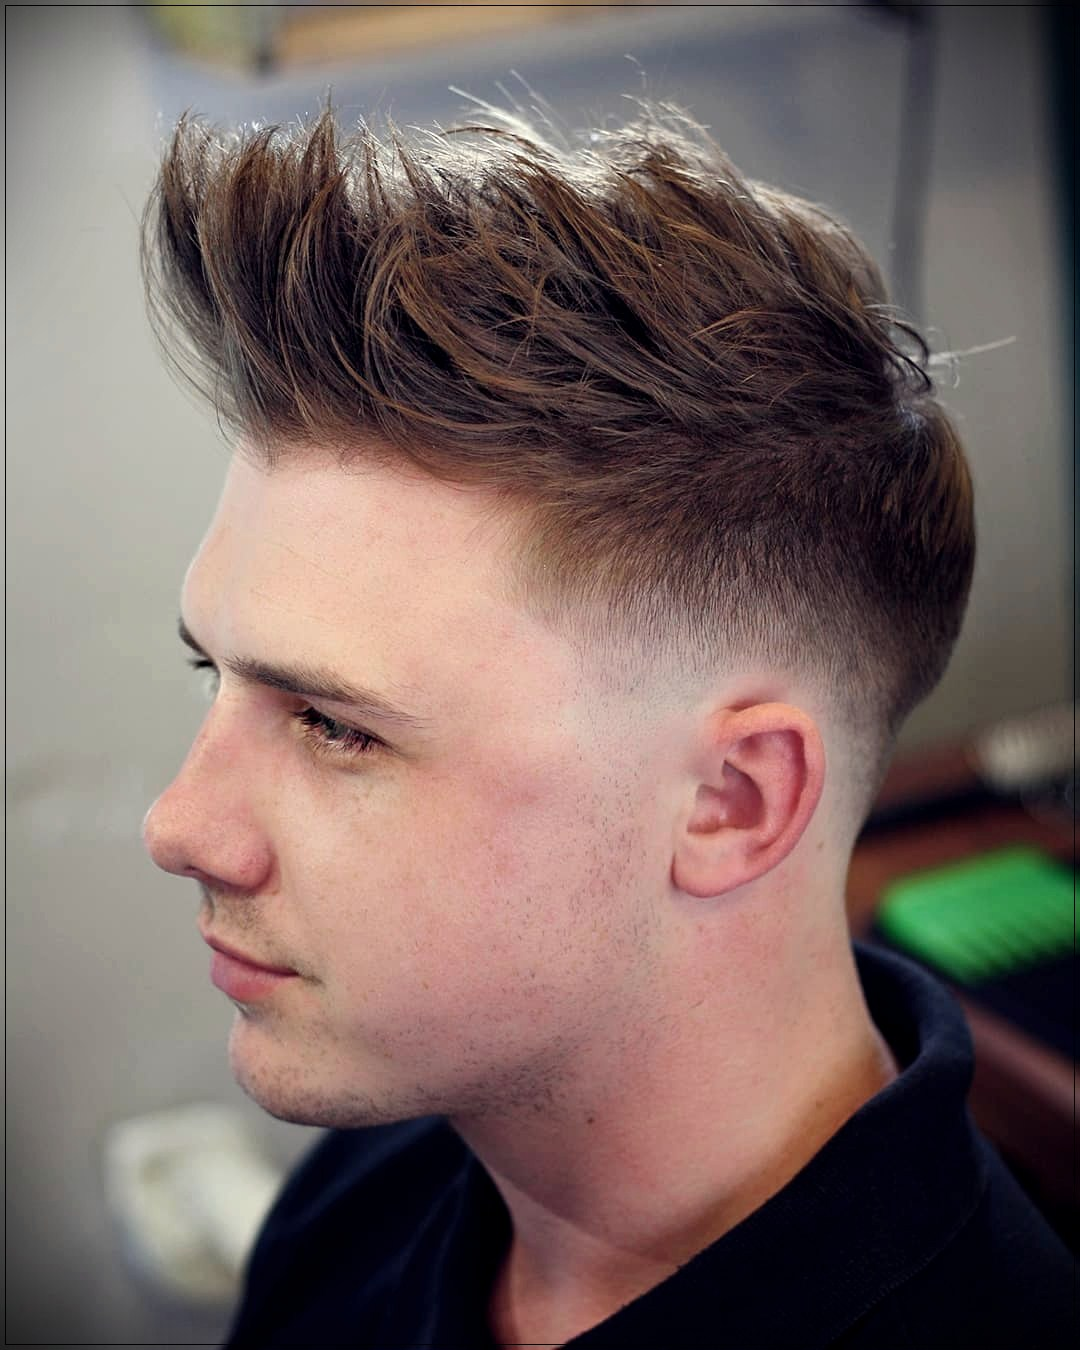 Short haircuts for men in 2018 10 - Sport these Short Haircuts for men in 2018